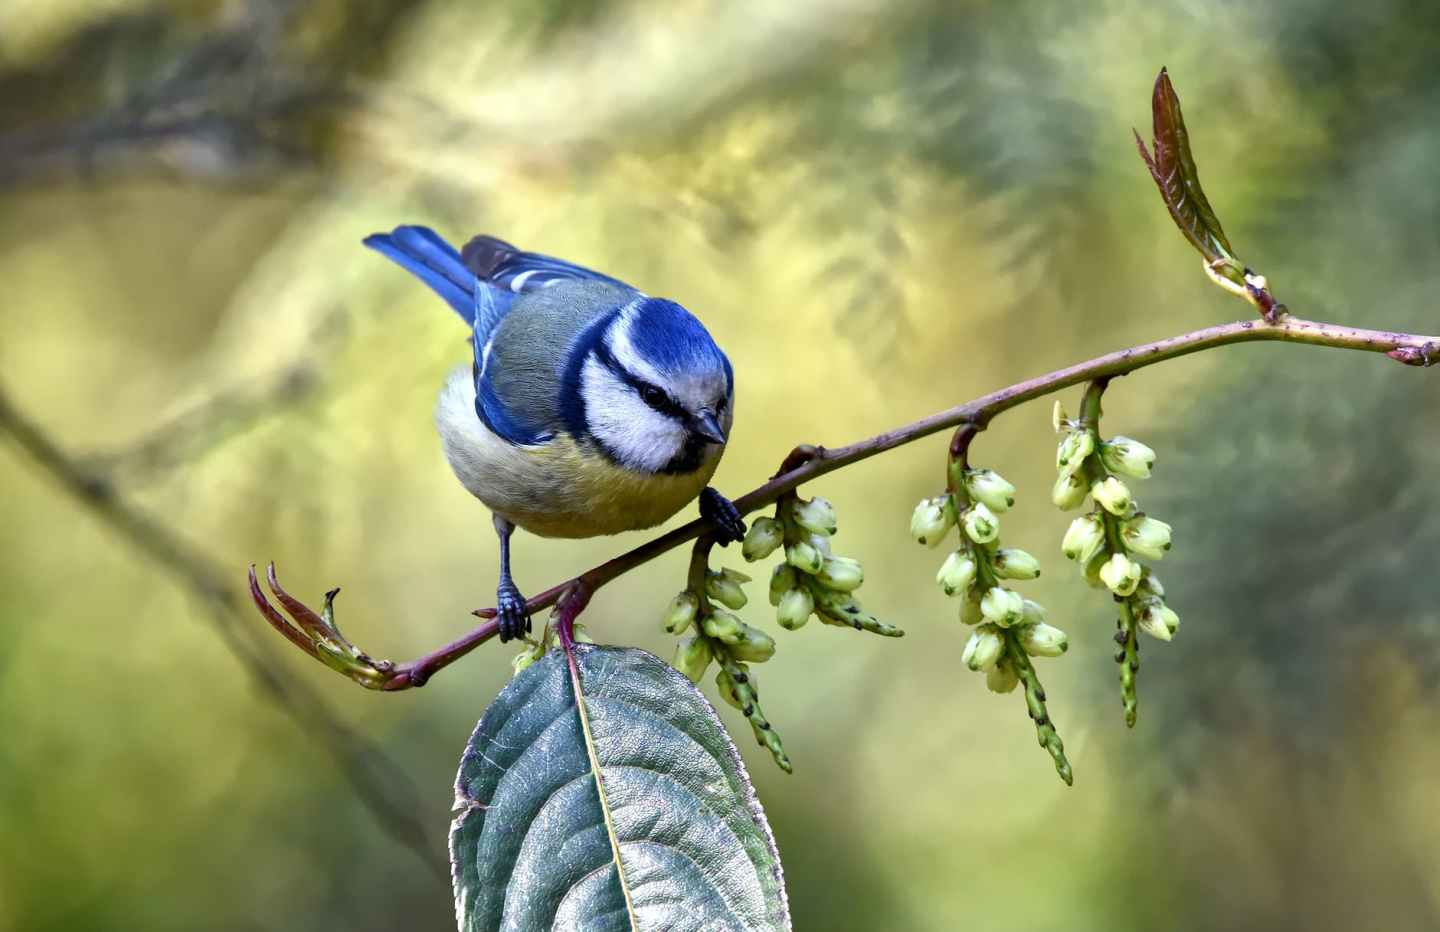 close up photo of blue bird perched on branch